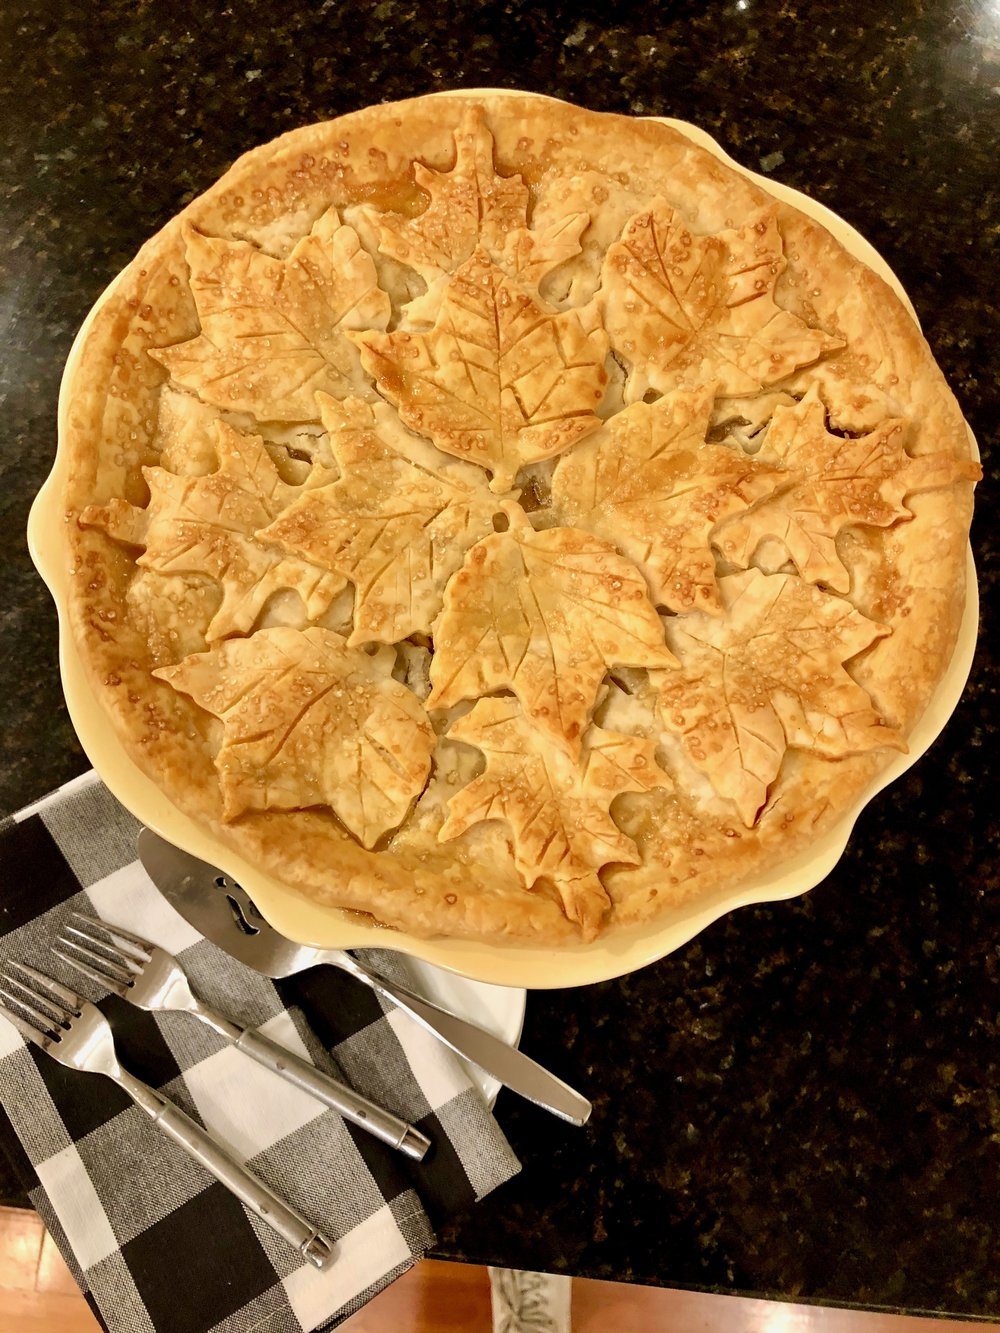 warm apple pie out of the oven